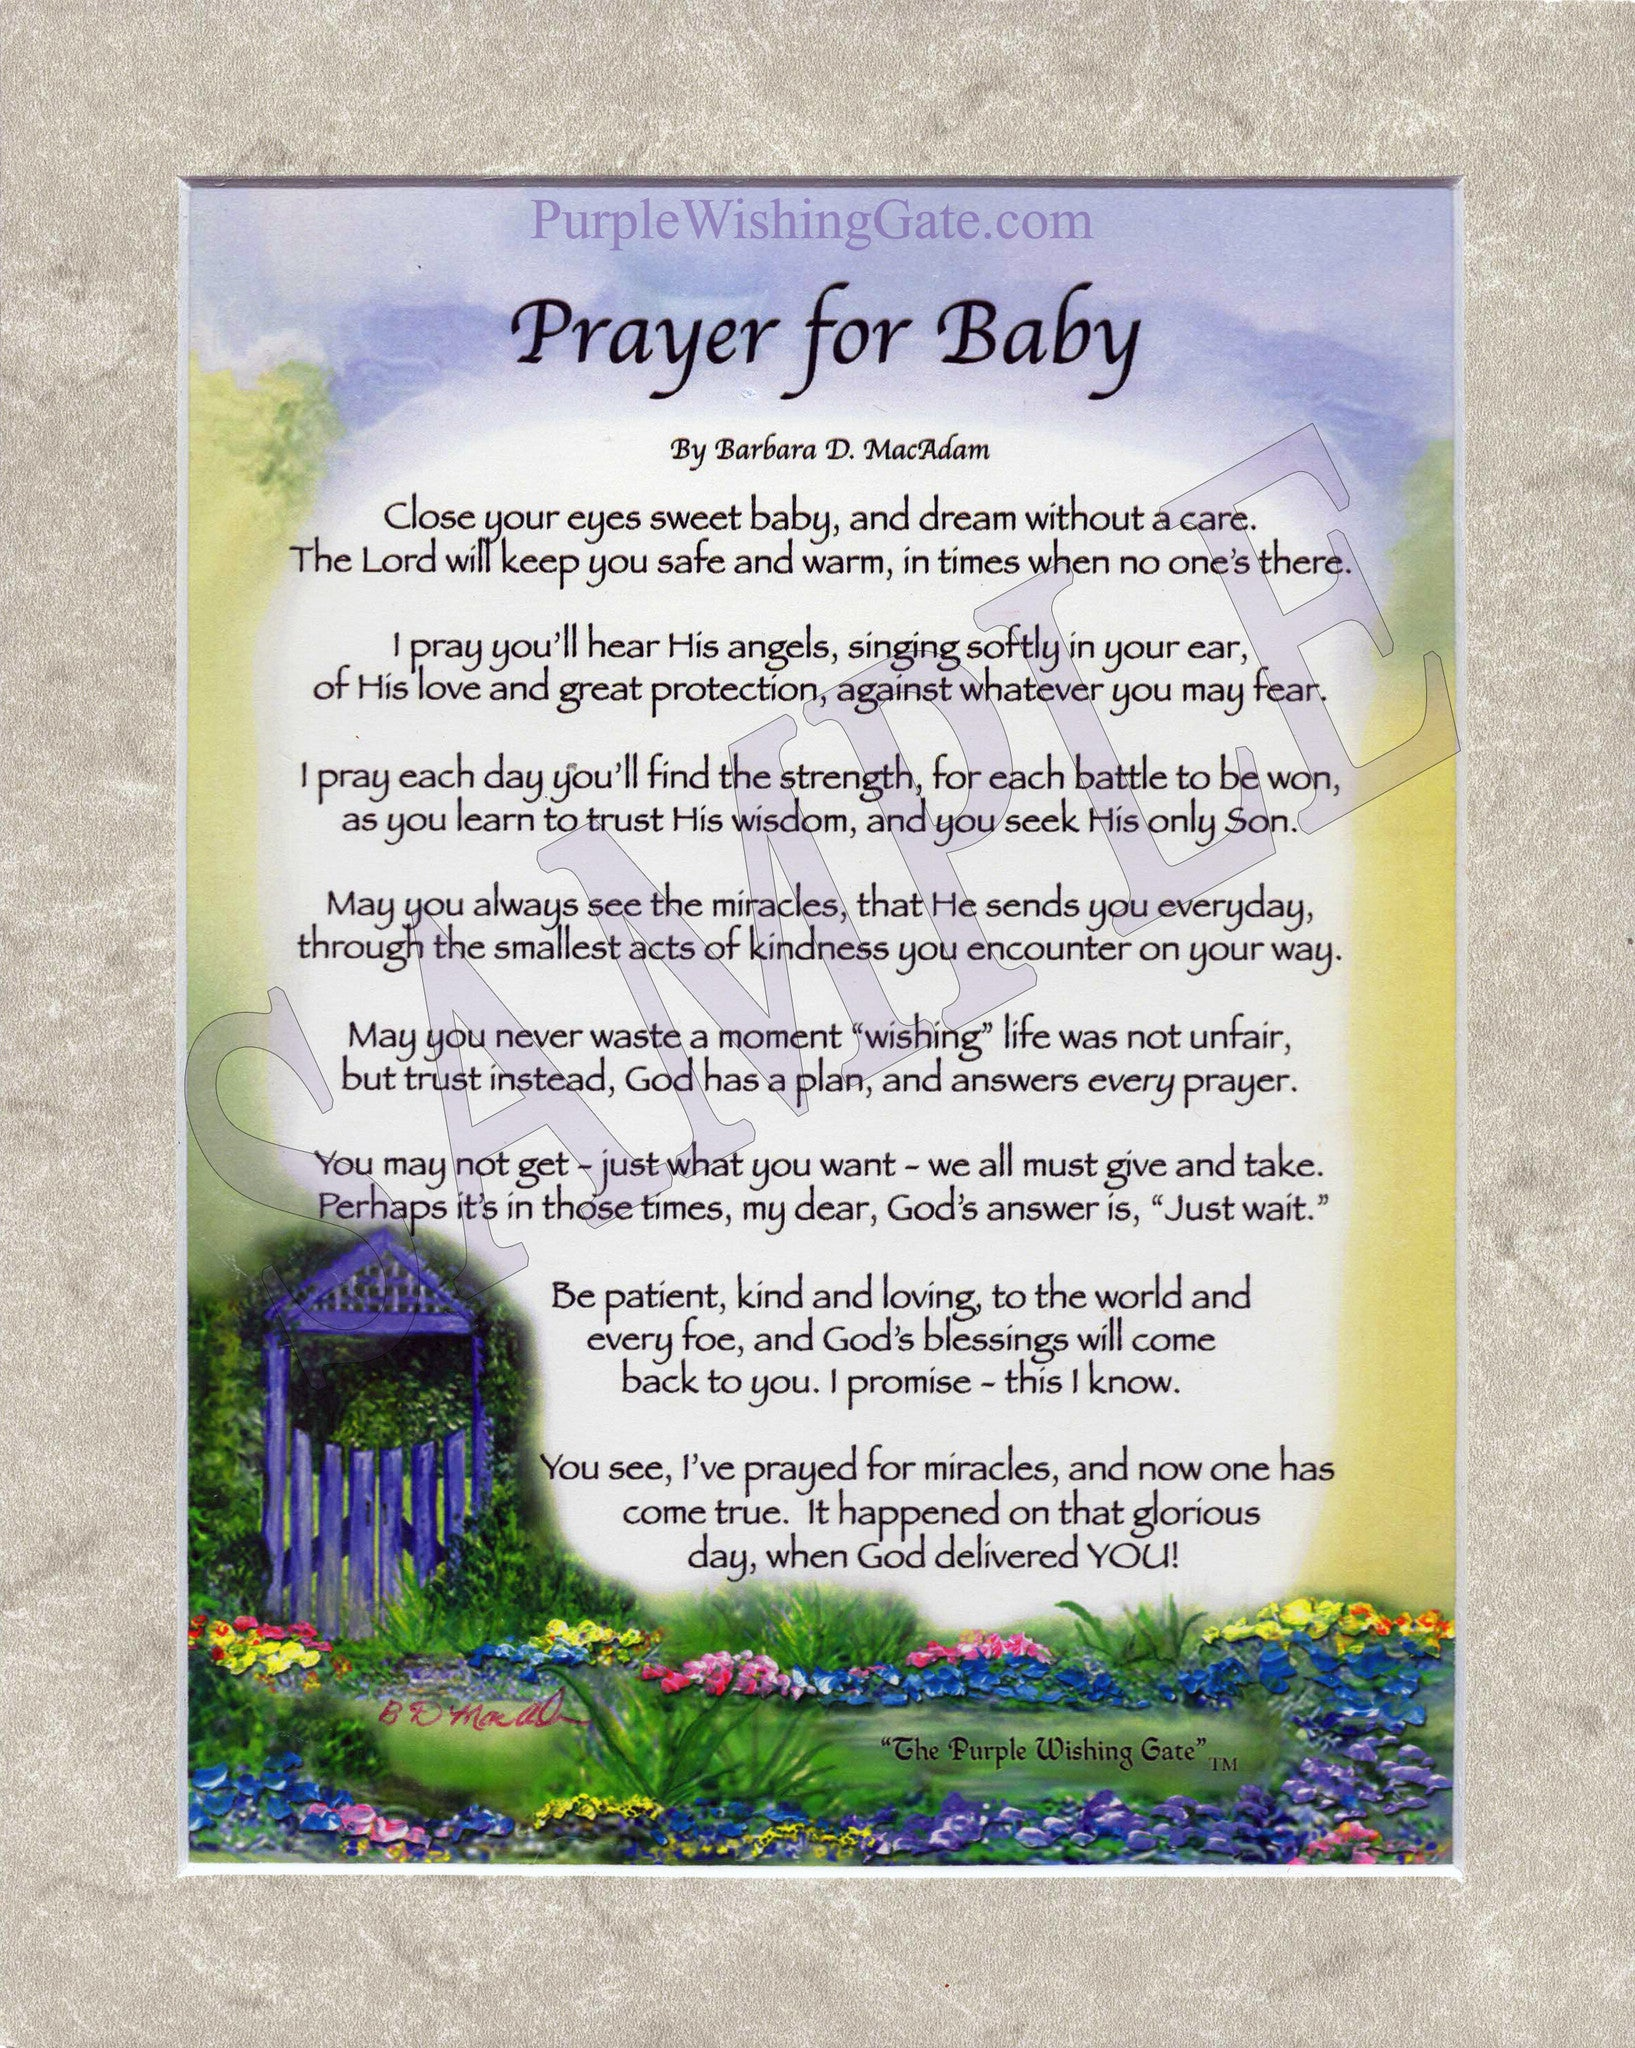 A Prayer for Baby (8x10) - 8x10 Custom Matted Clearance - PurpleWishingGate.com